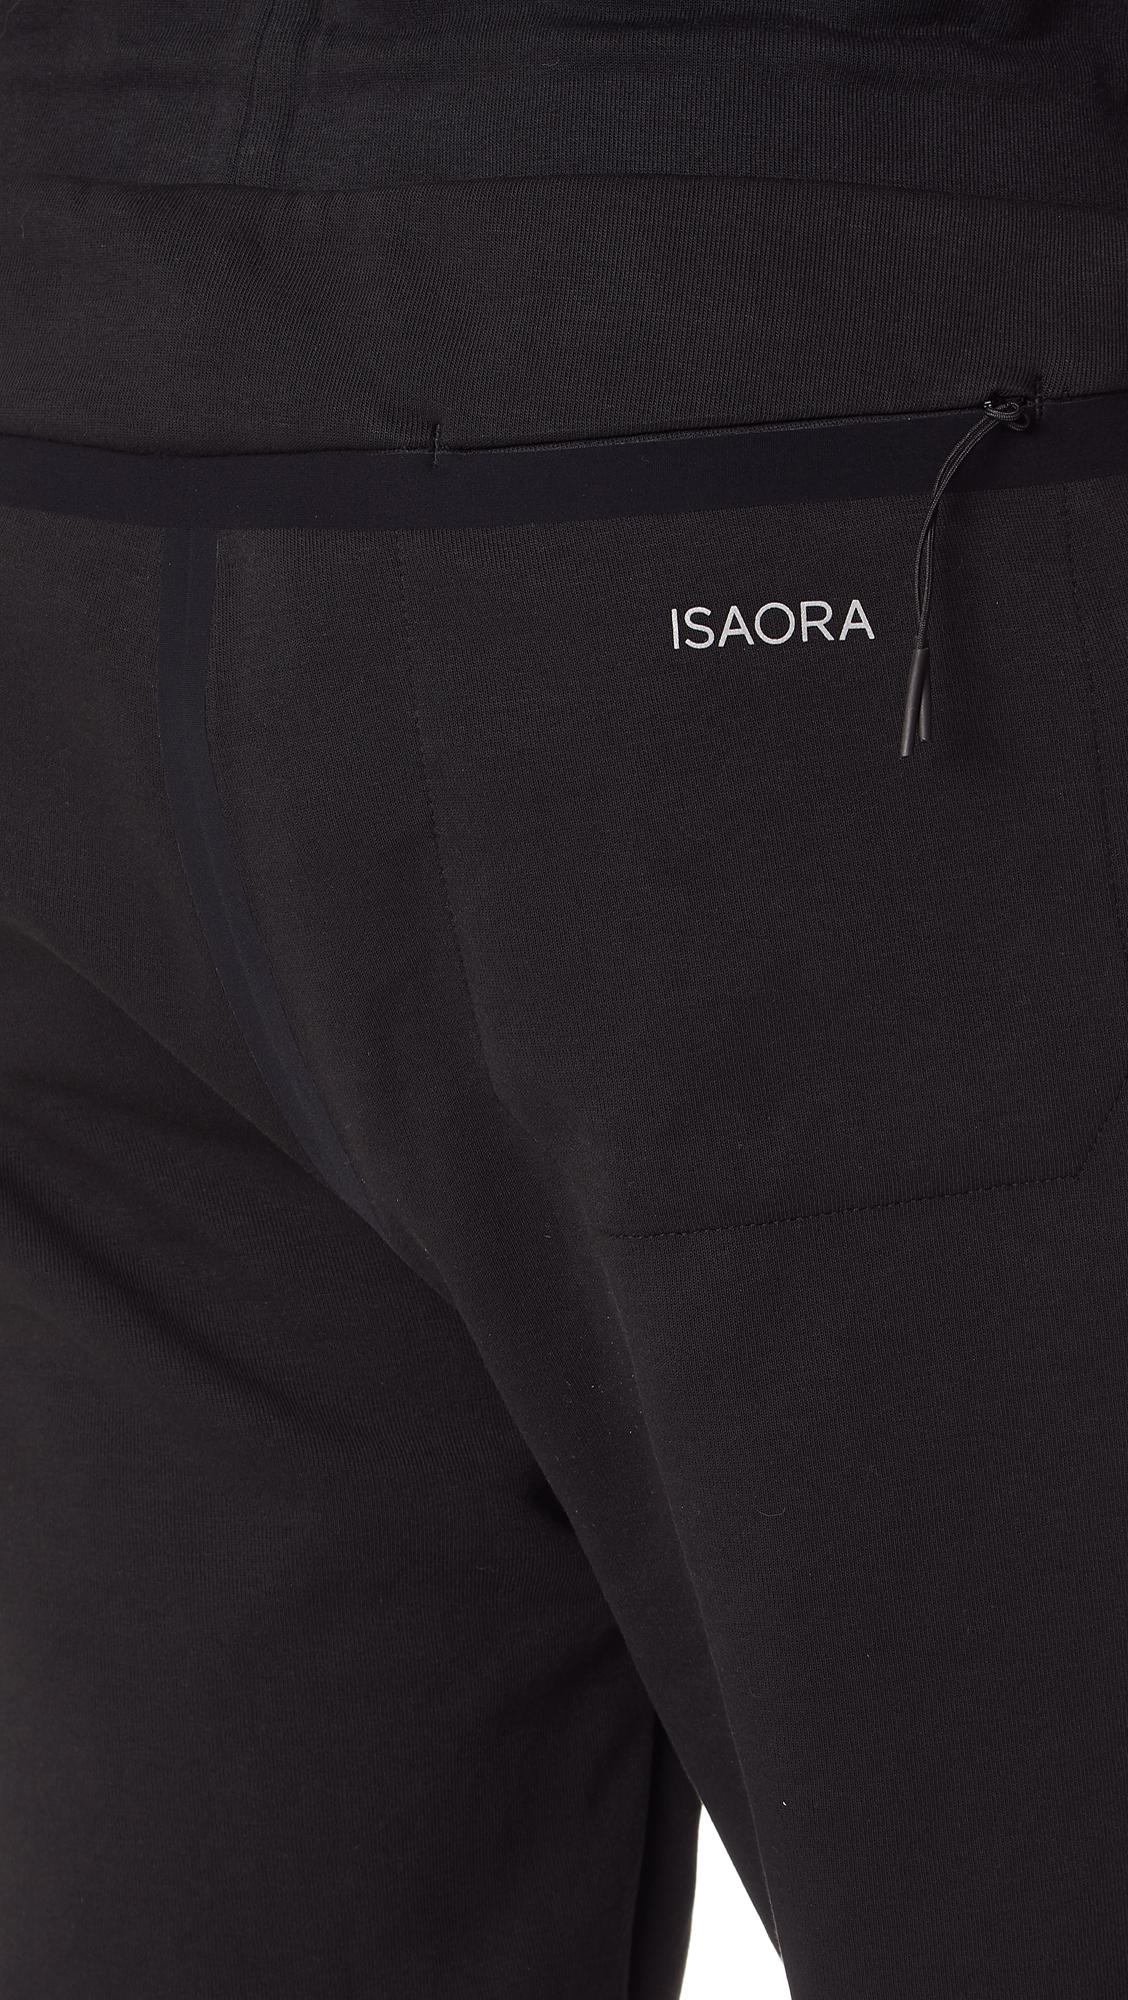 Isaora Synthetic Taped Sweatpants in Black for Men